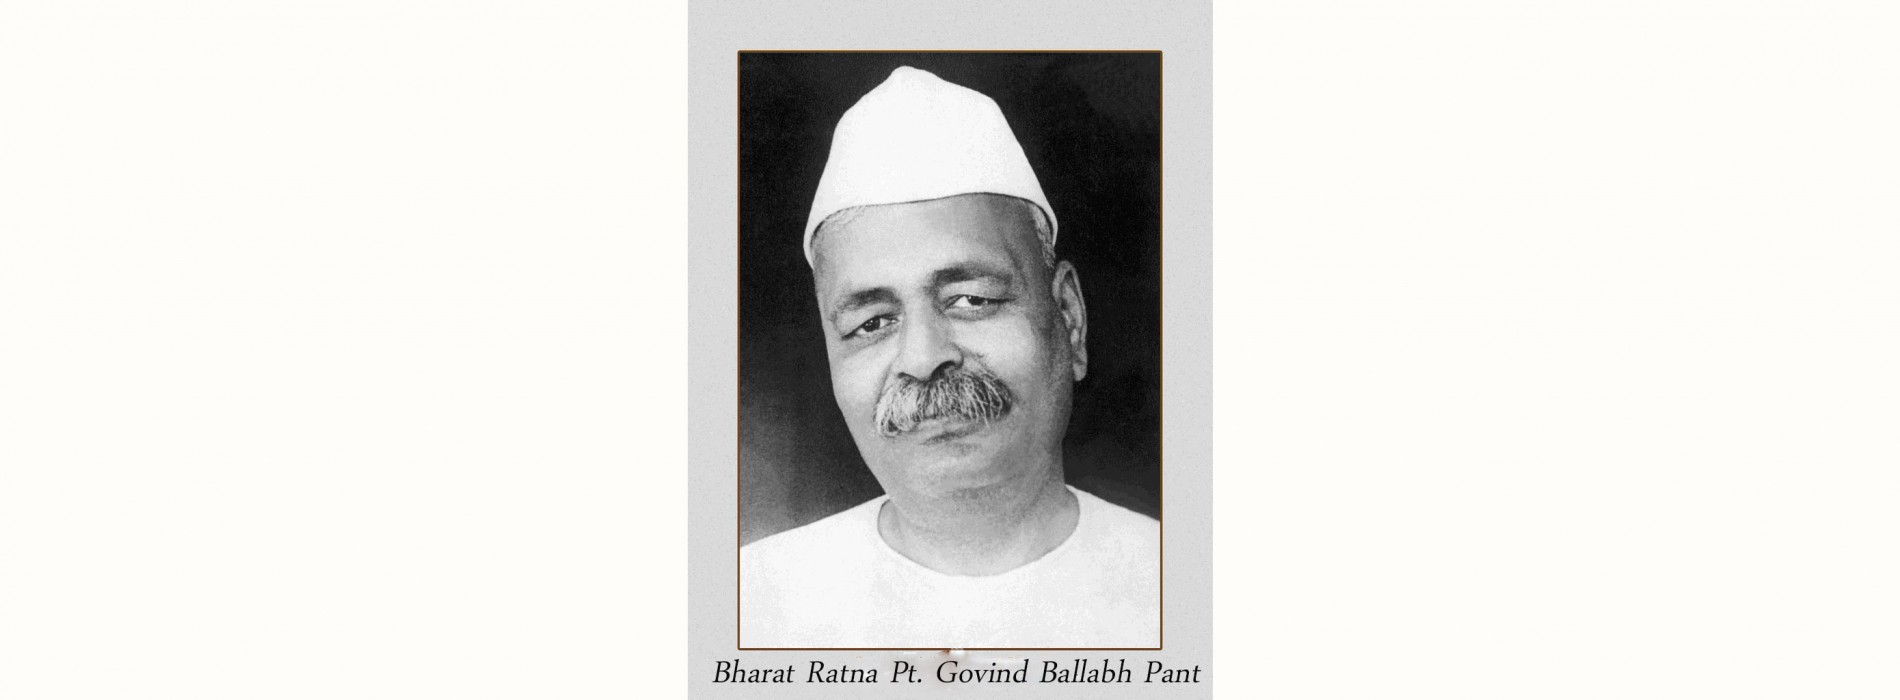 Nation remembers Pandit Govind Ballabh Pant on his 131st birth anniversary